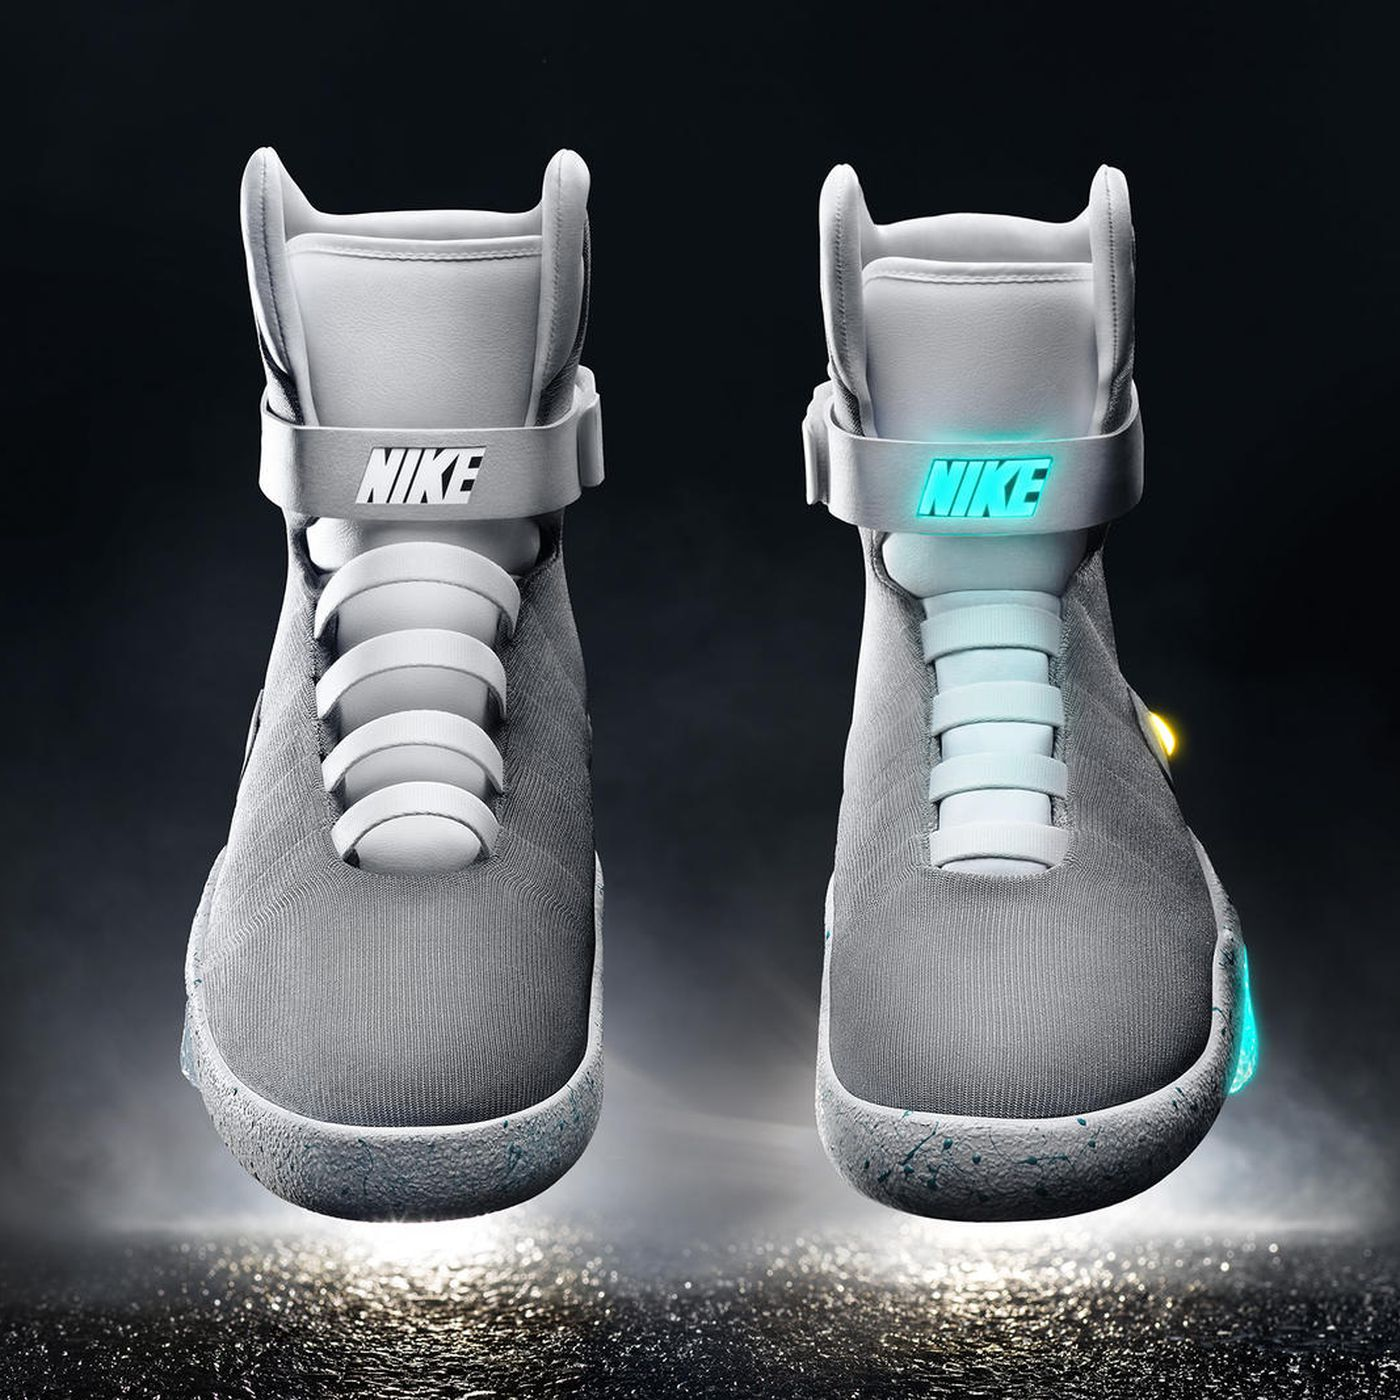 Objetor mapa Orgulloso  Nike will sell the self-lacing sneakers from Back to the Future in 2016 -  The Verge